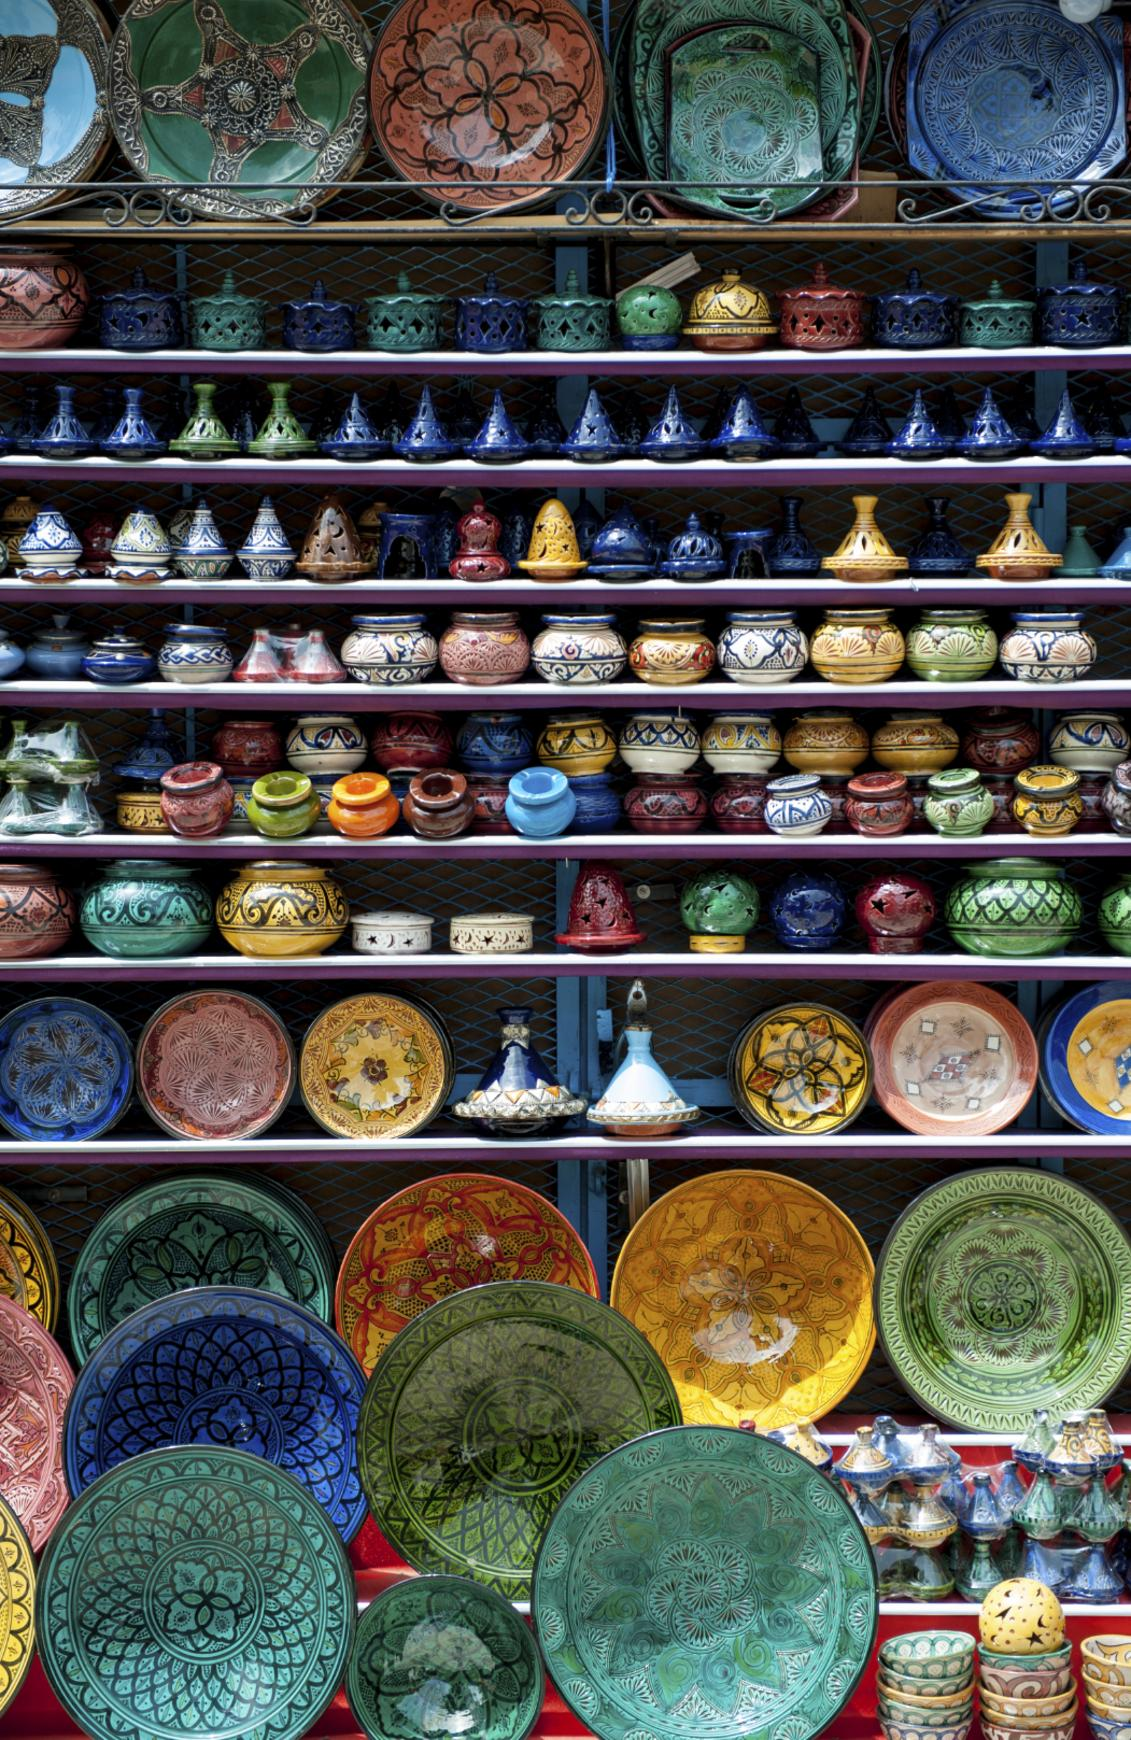 ESCAPE: CHEFCHAOUEN, MOROCCO .. Paul Ewart story .. Ceramics in souk of Chefchaouen (Chaouen), Morocco, North Africa. Picture: iStock